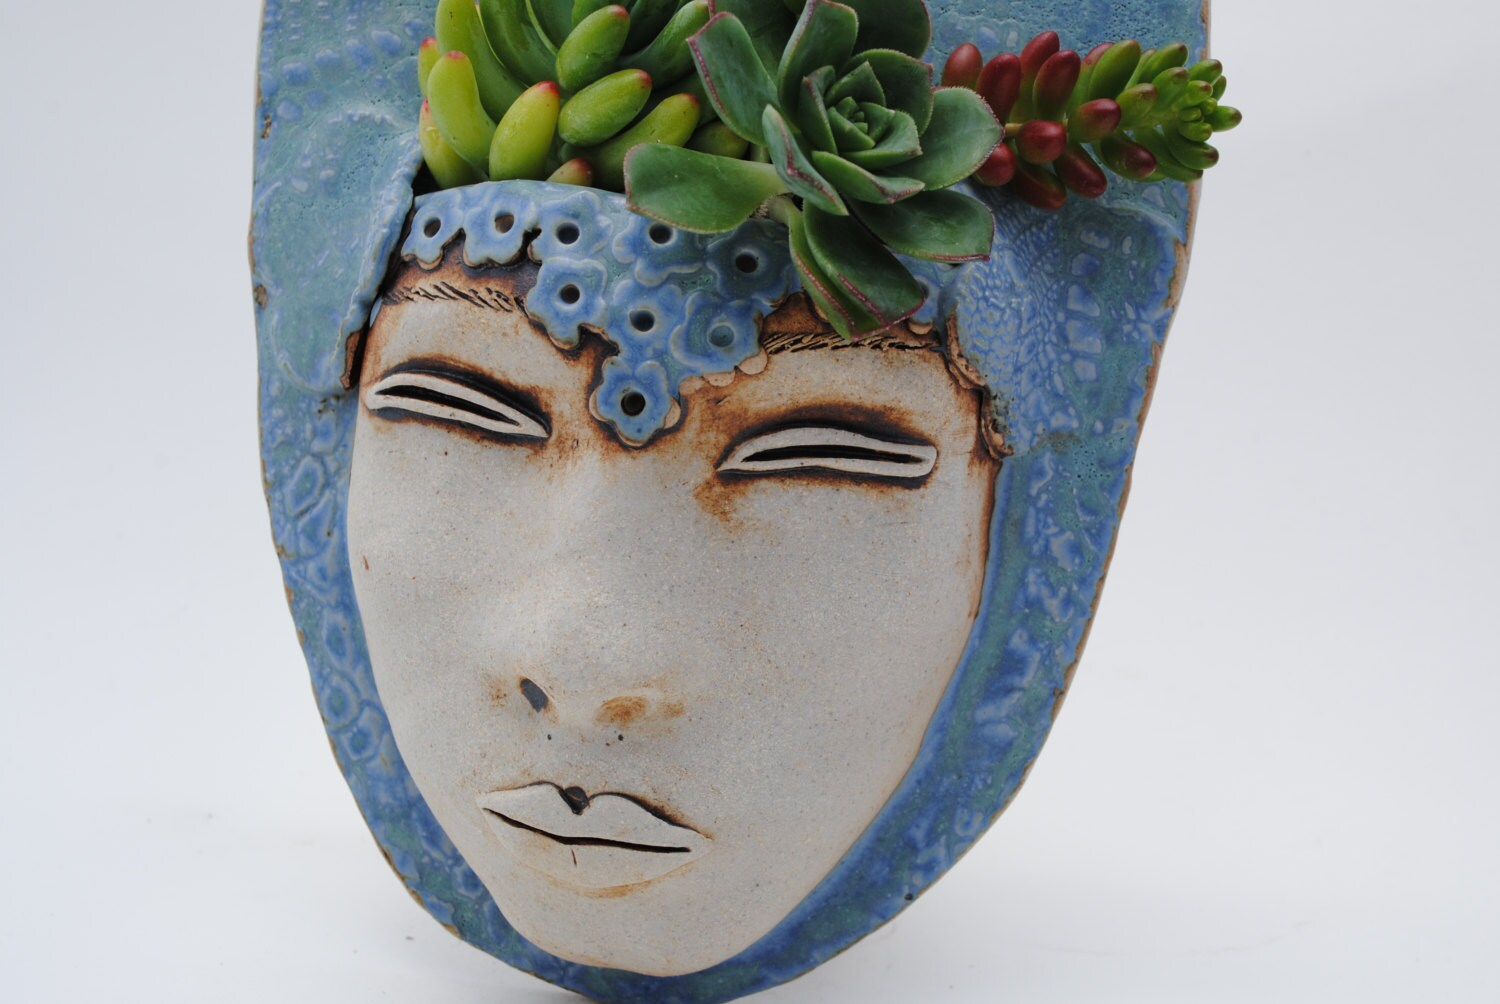 Ceramic Face Planter Garden Art Mask Wall By Wickedclaygirl